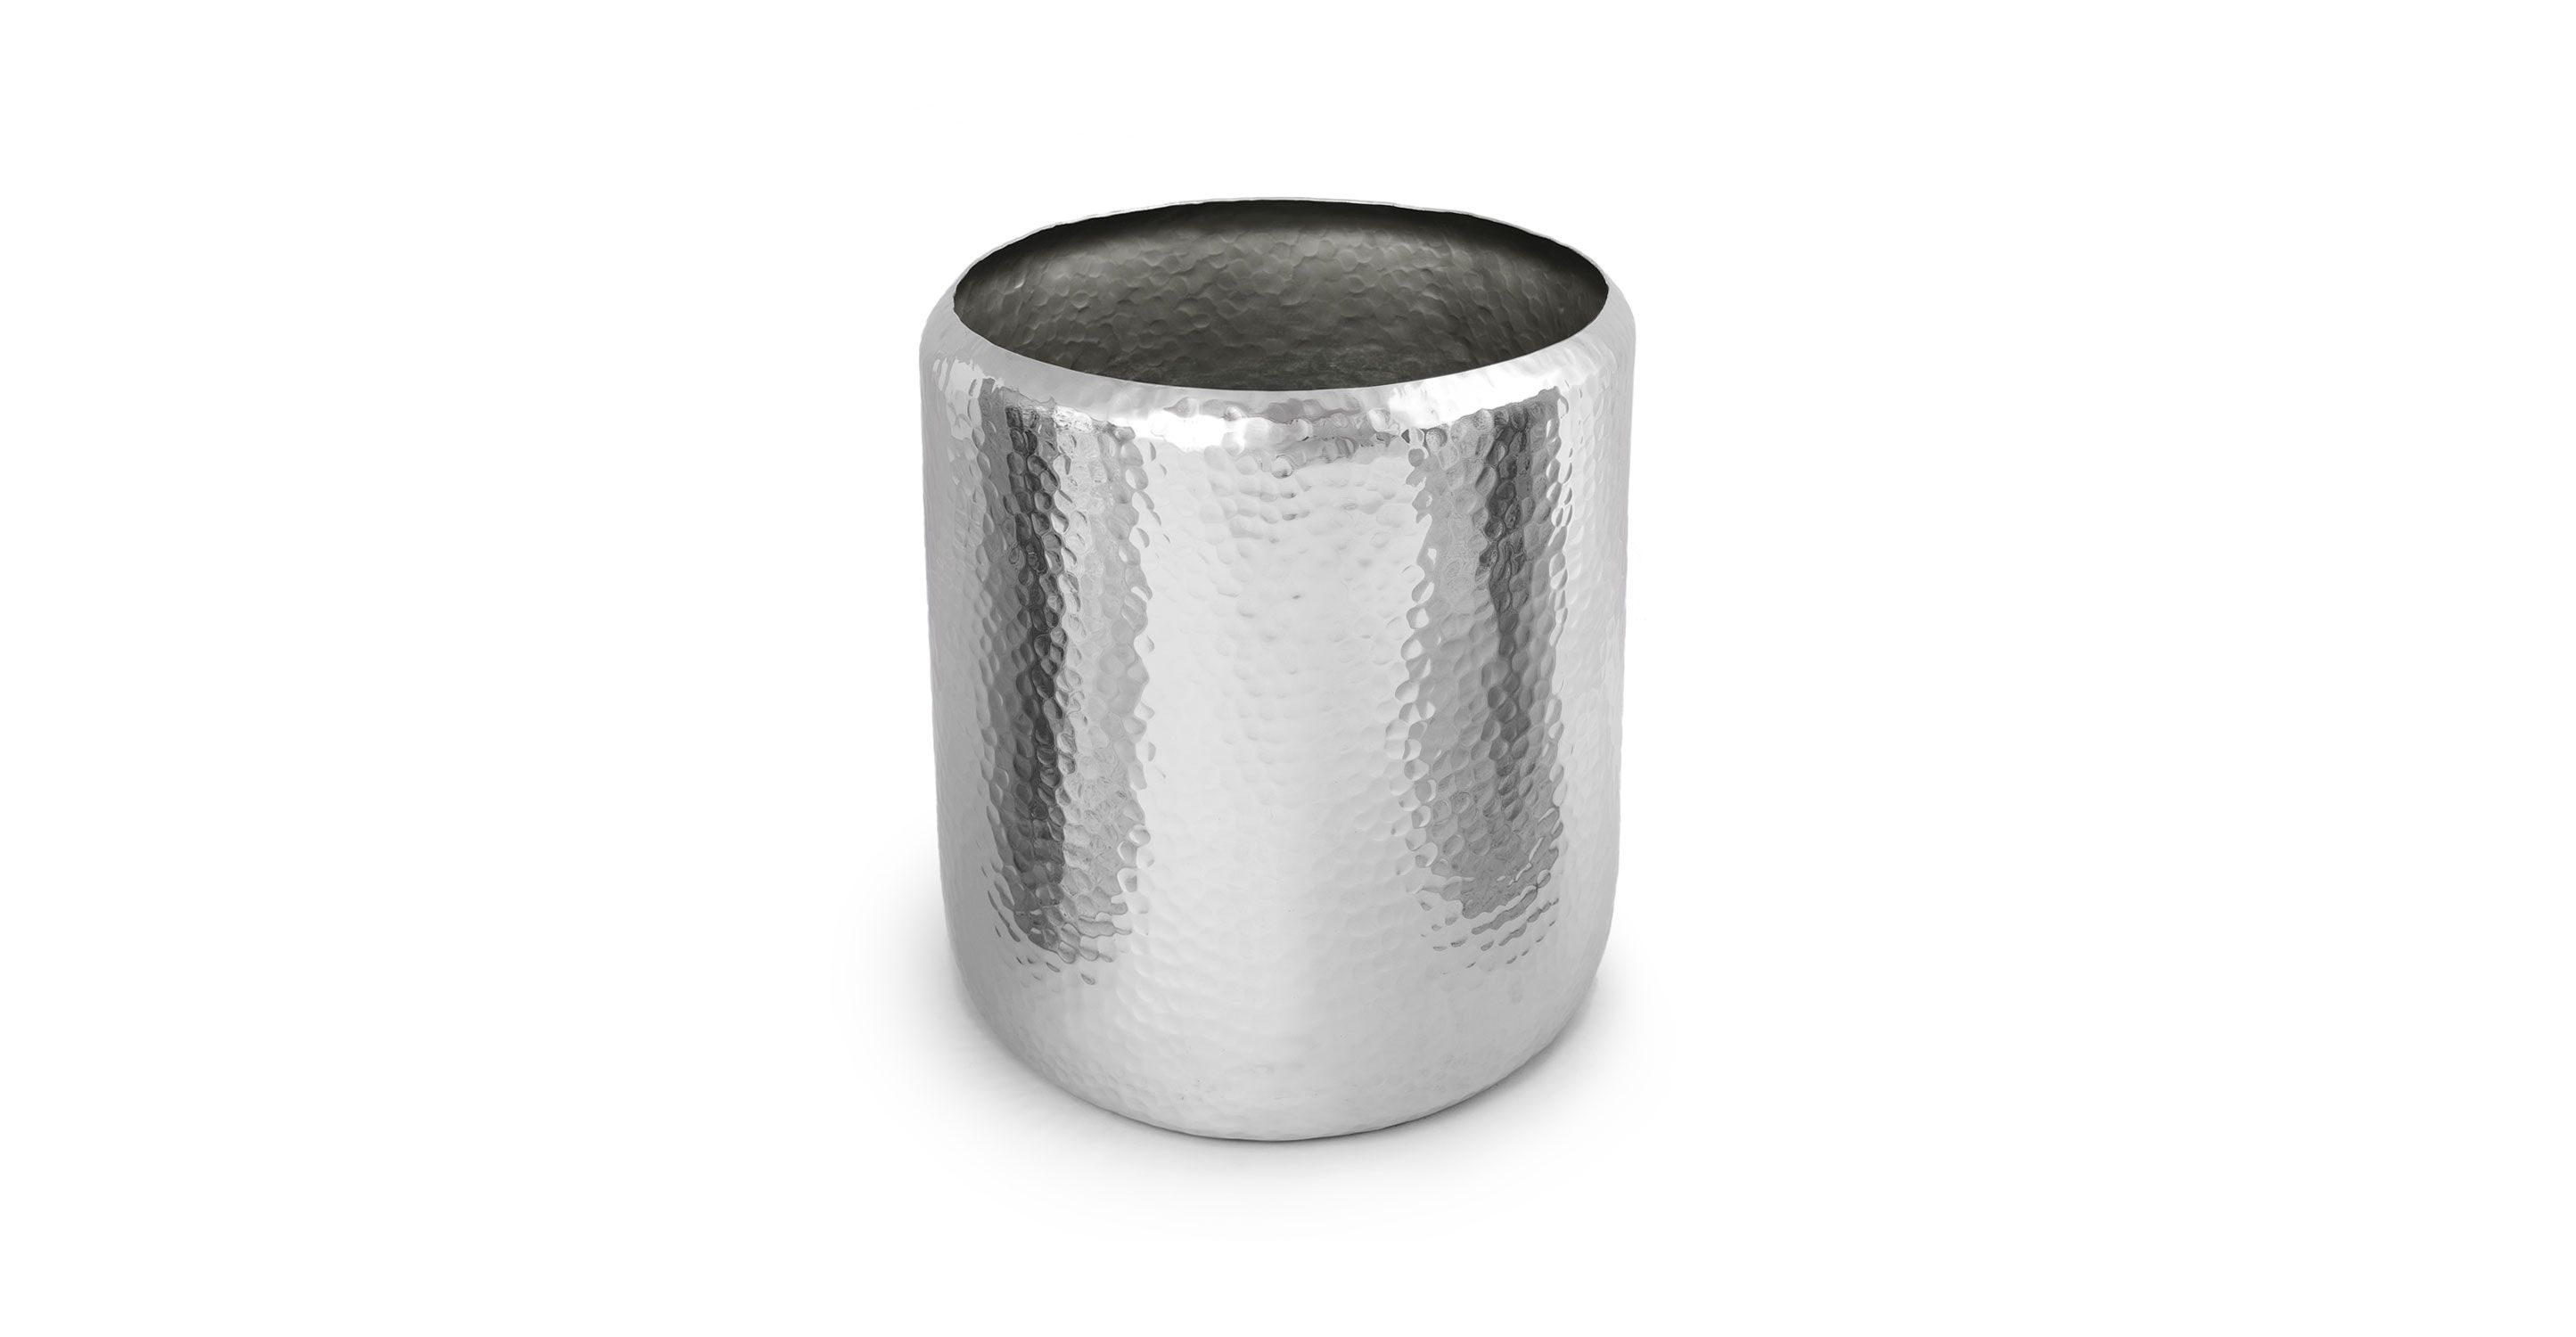 2 x silver decorative pot aluminum large article myria 2 x silver decorative pot aluminum large article myria contemporary accessories workwithnaturefo